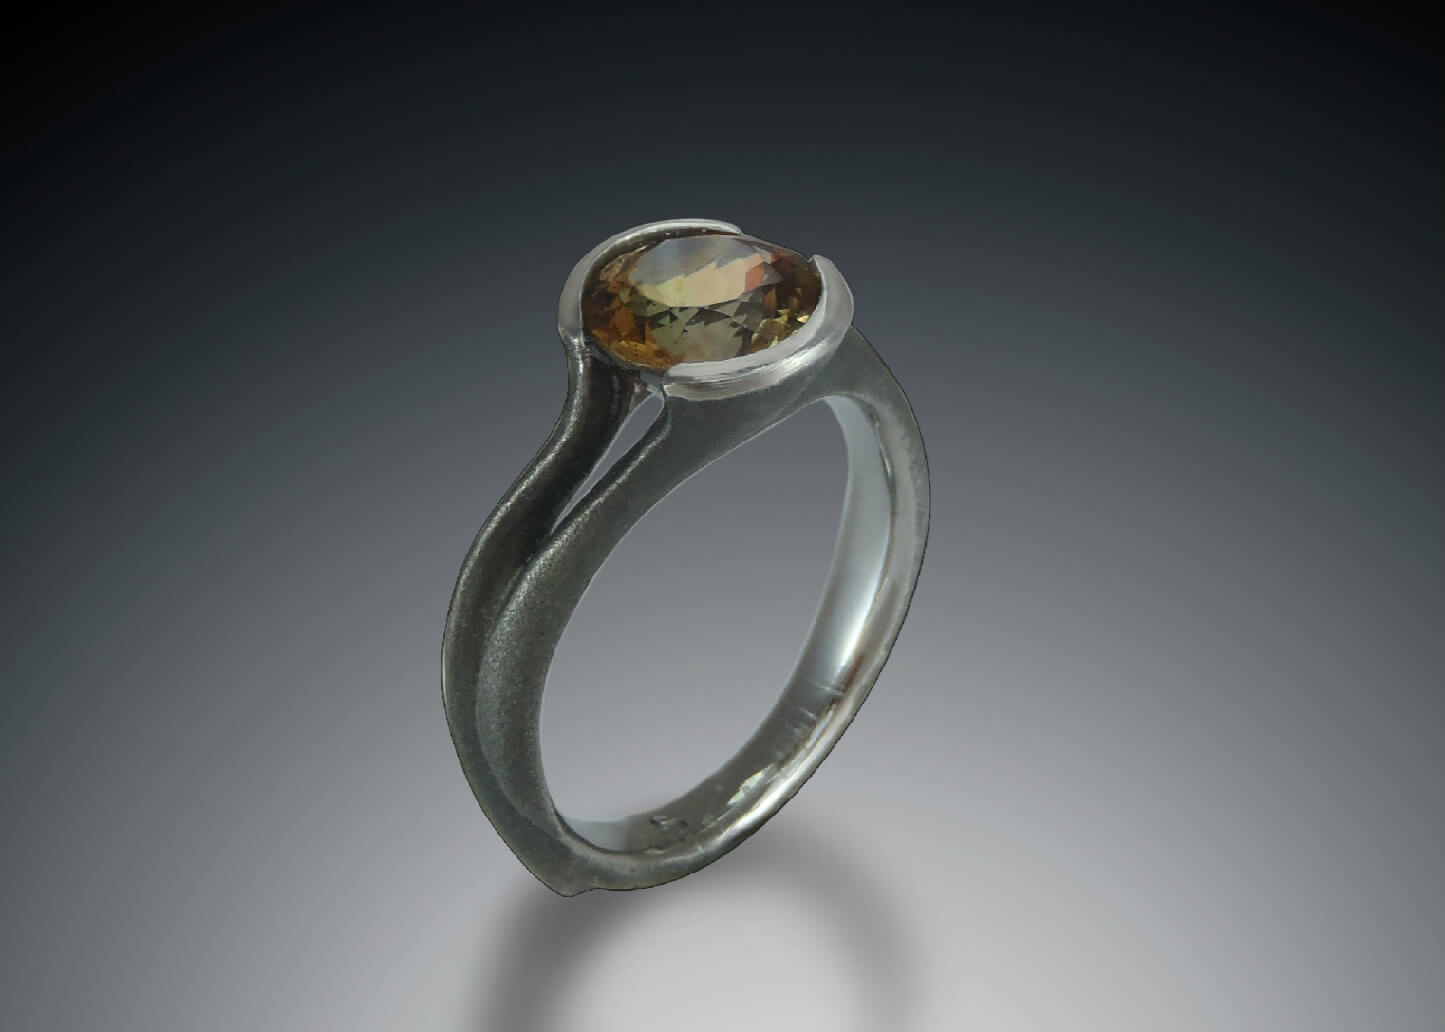 Blackened Steel Andalusite Ring